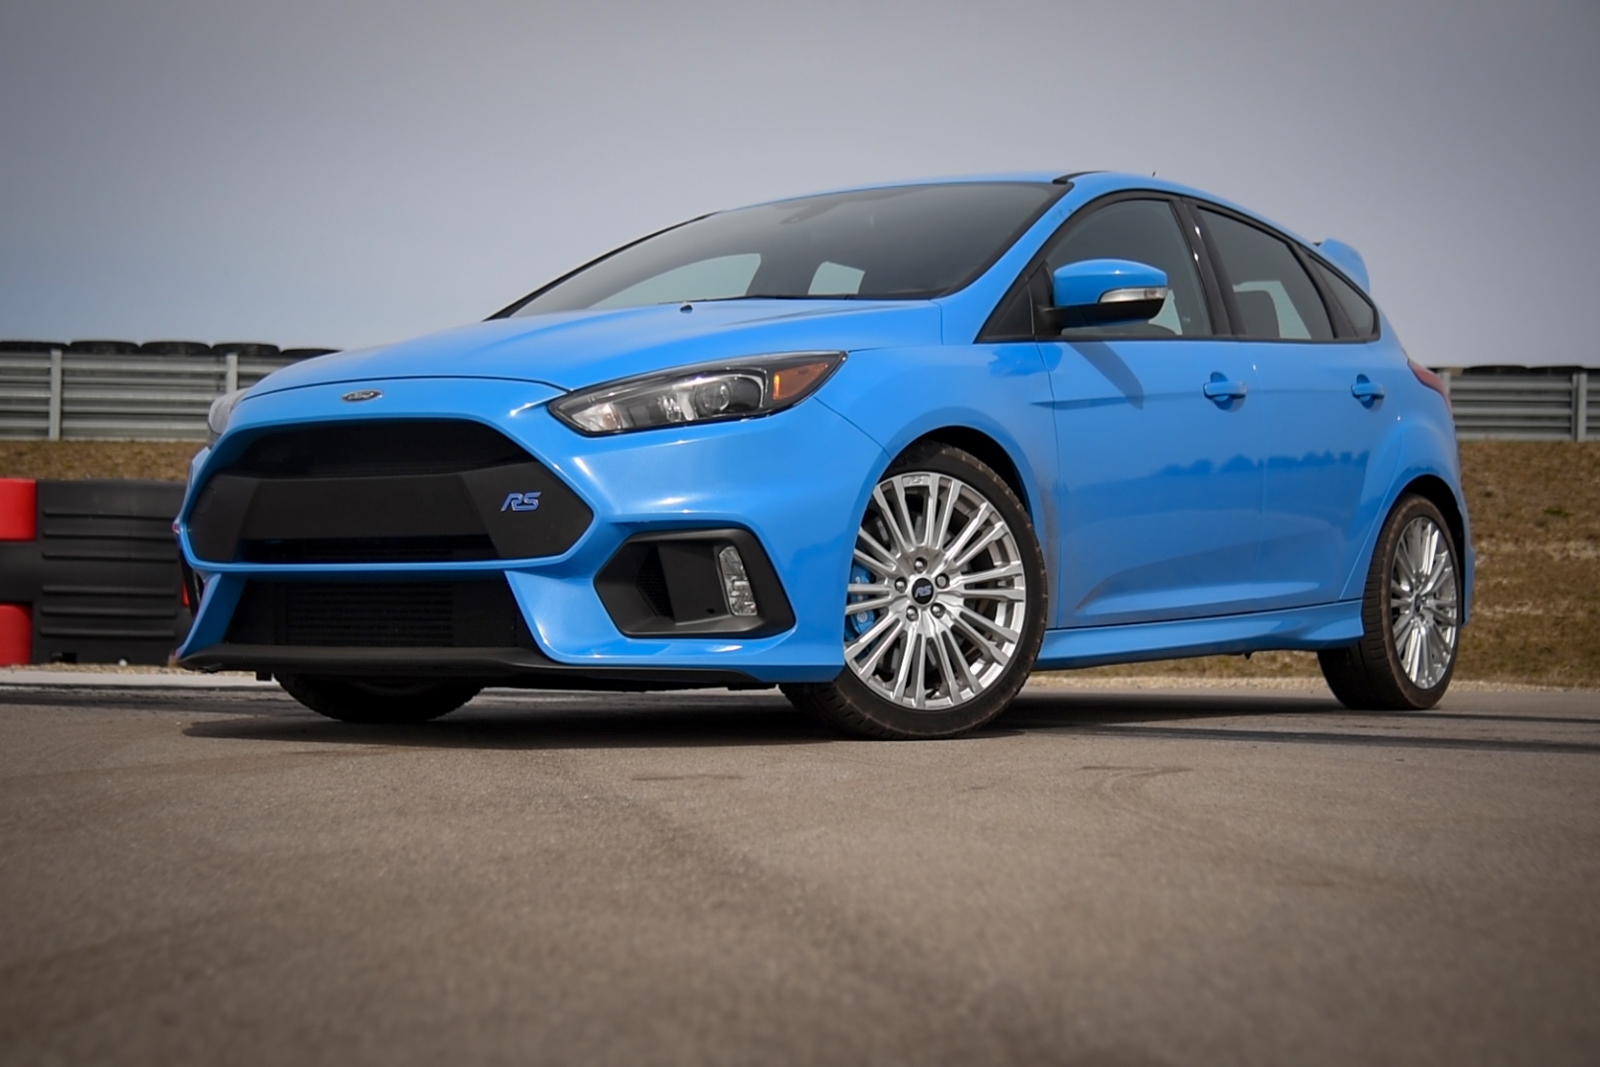 Juvenile Delinquency 2018 Ford Focus Rs Drift Stick Review